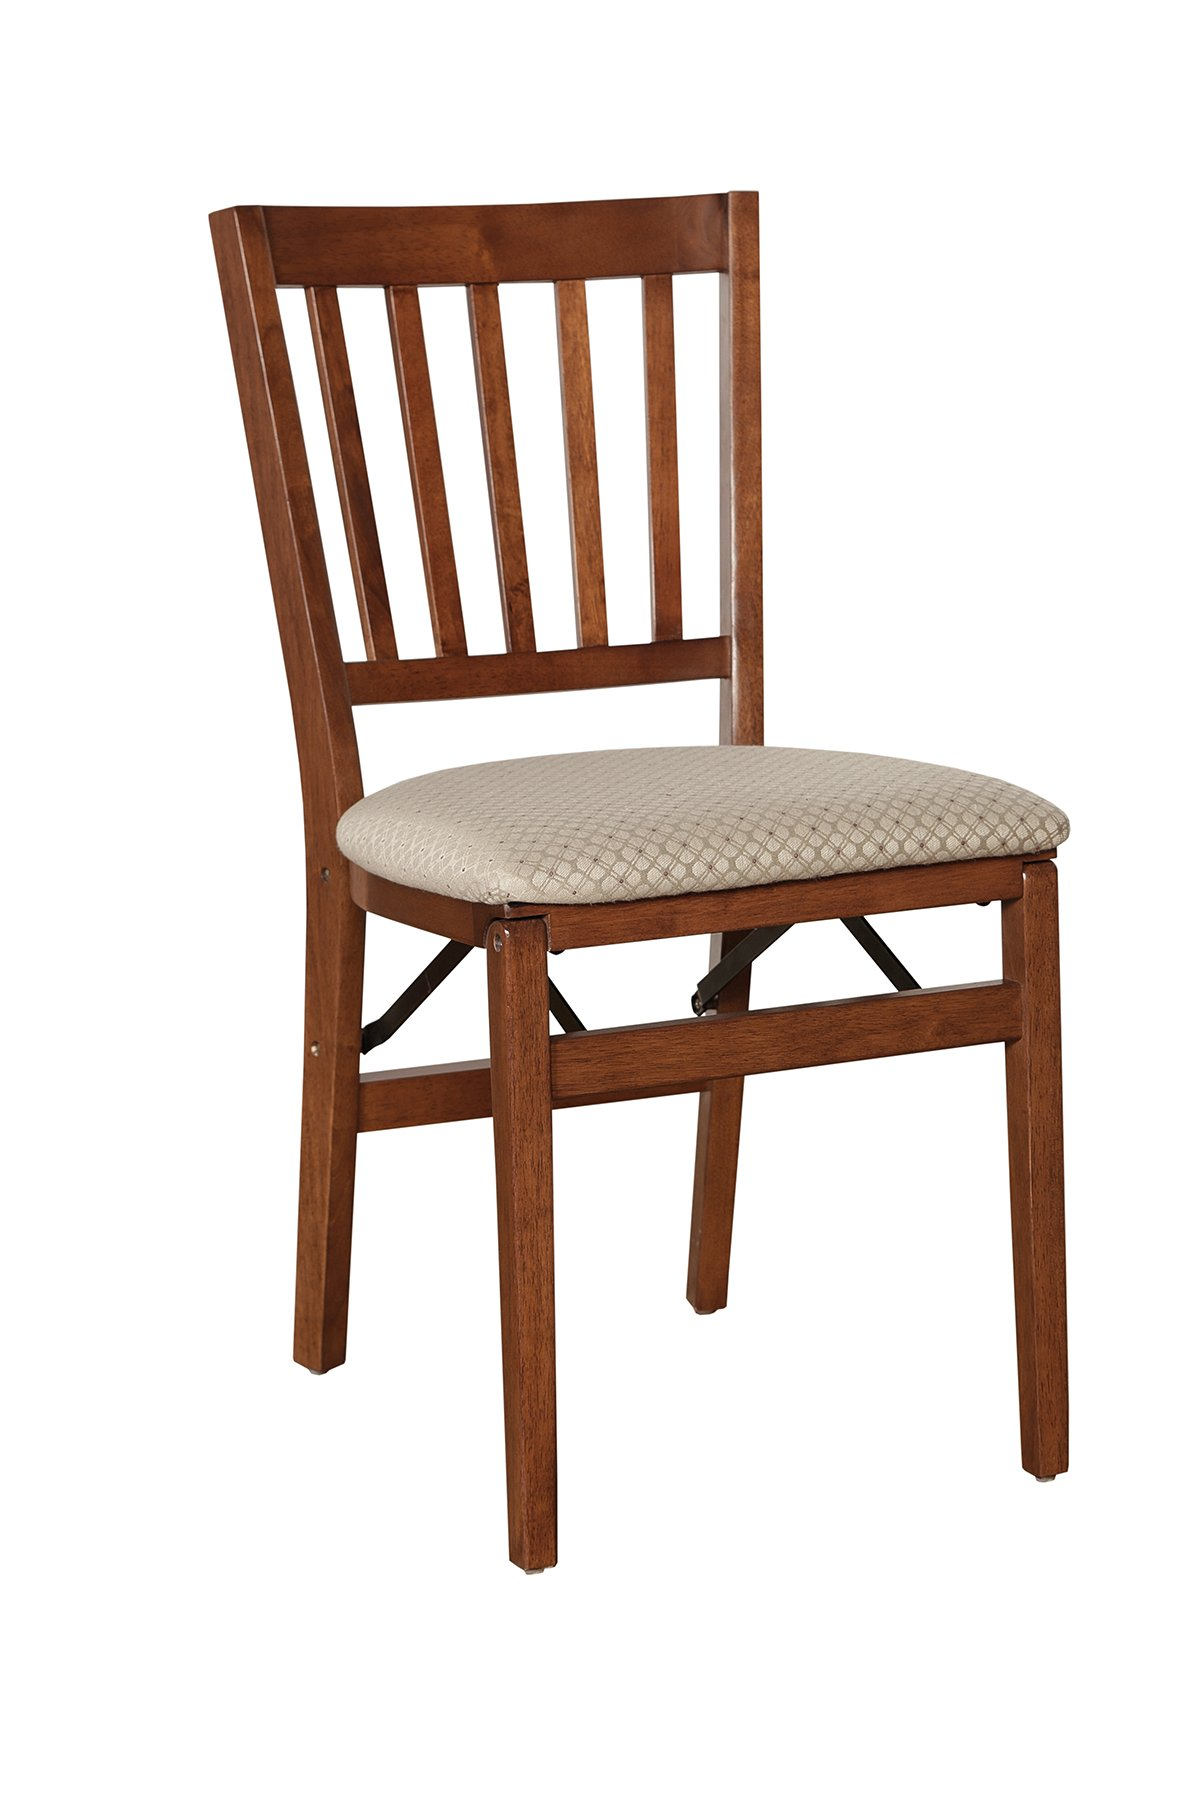 Stakmore School House Folding Chair Finish, Set of 2, Cherry by MECO